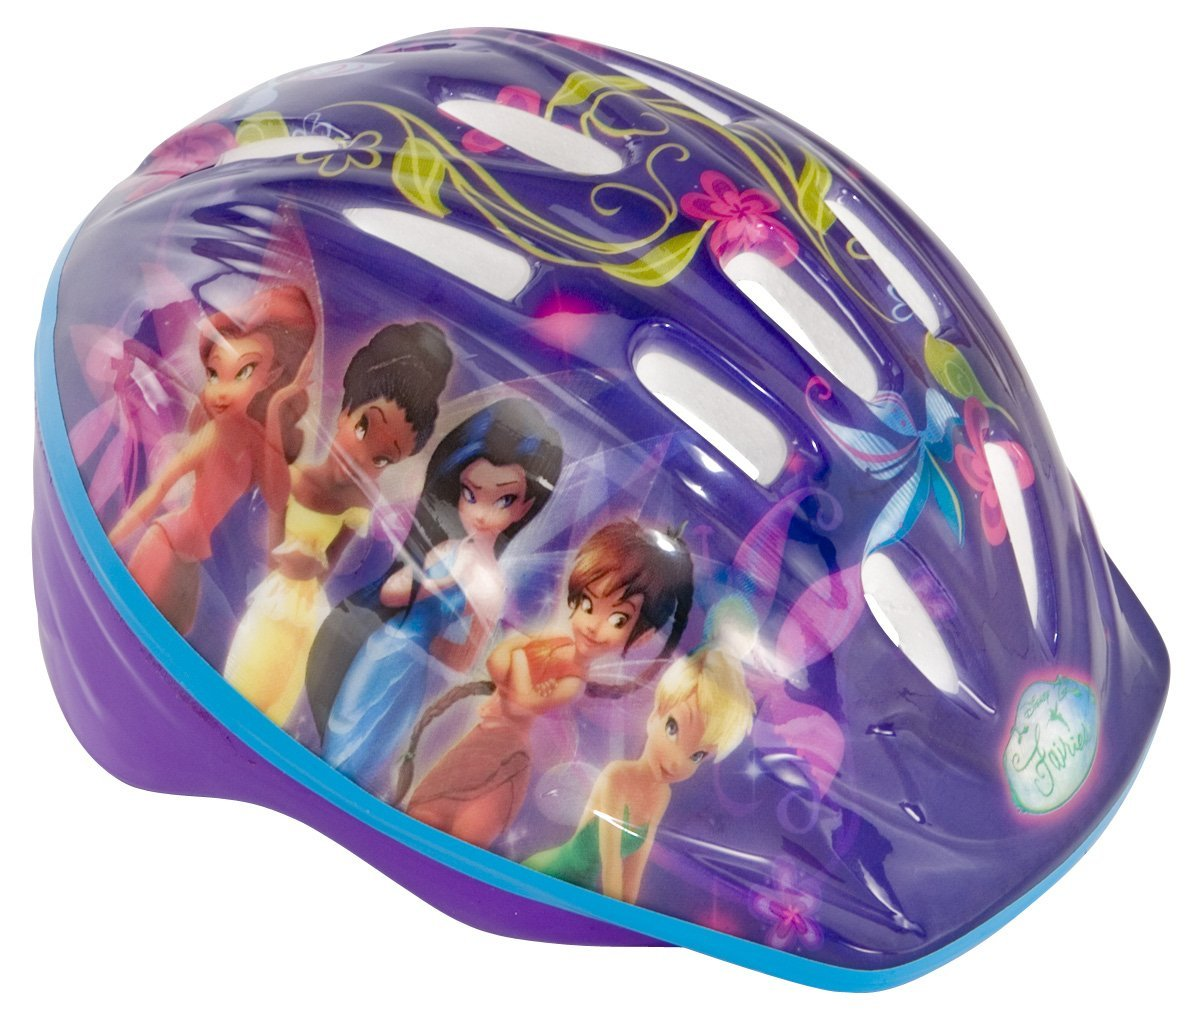 Disney Fairies Bicycle Helmets